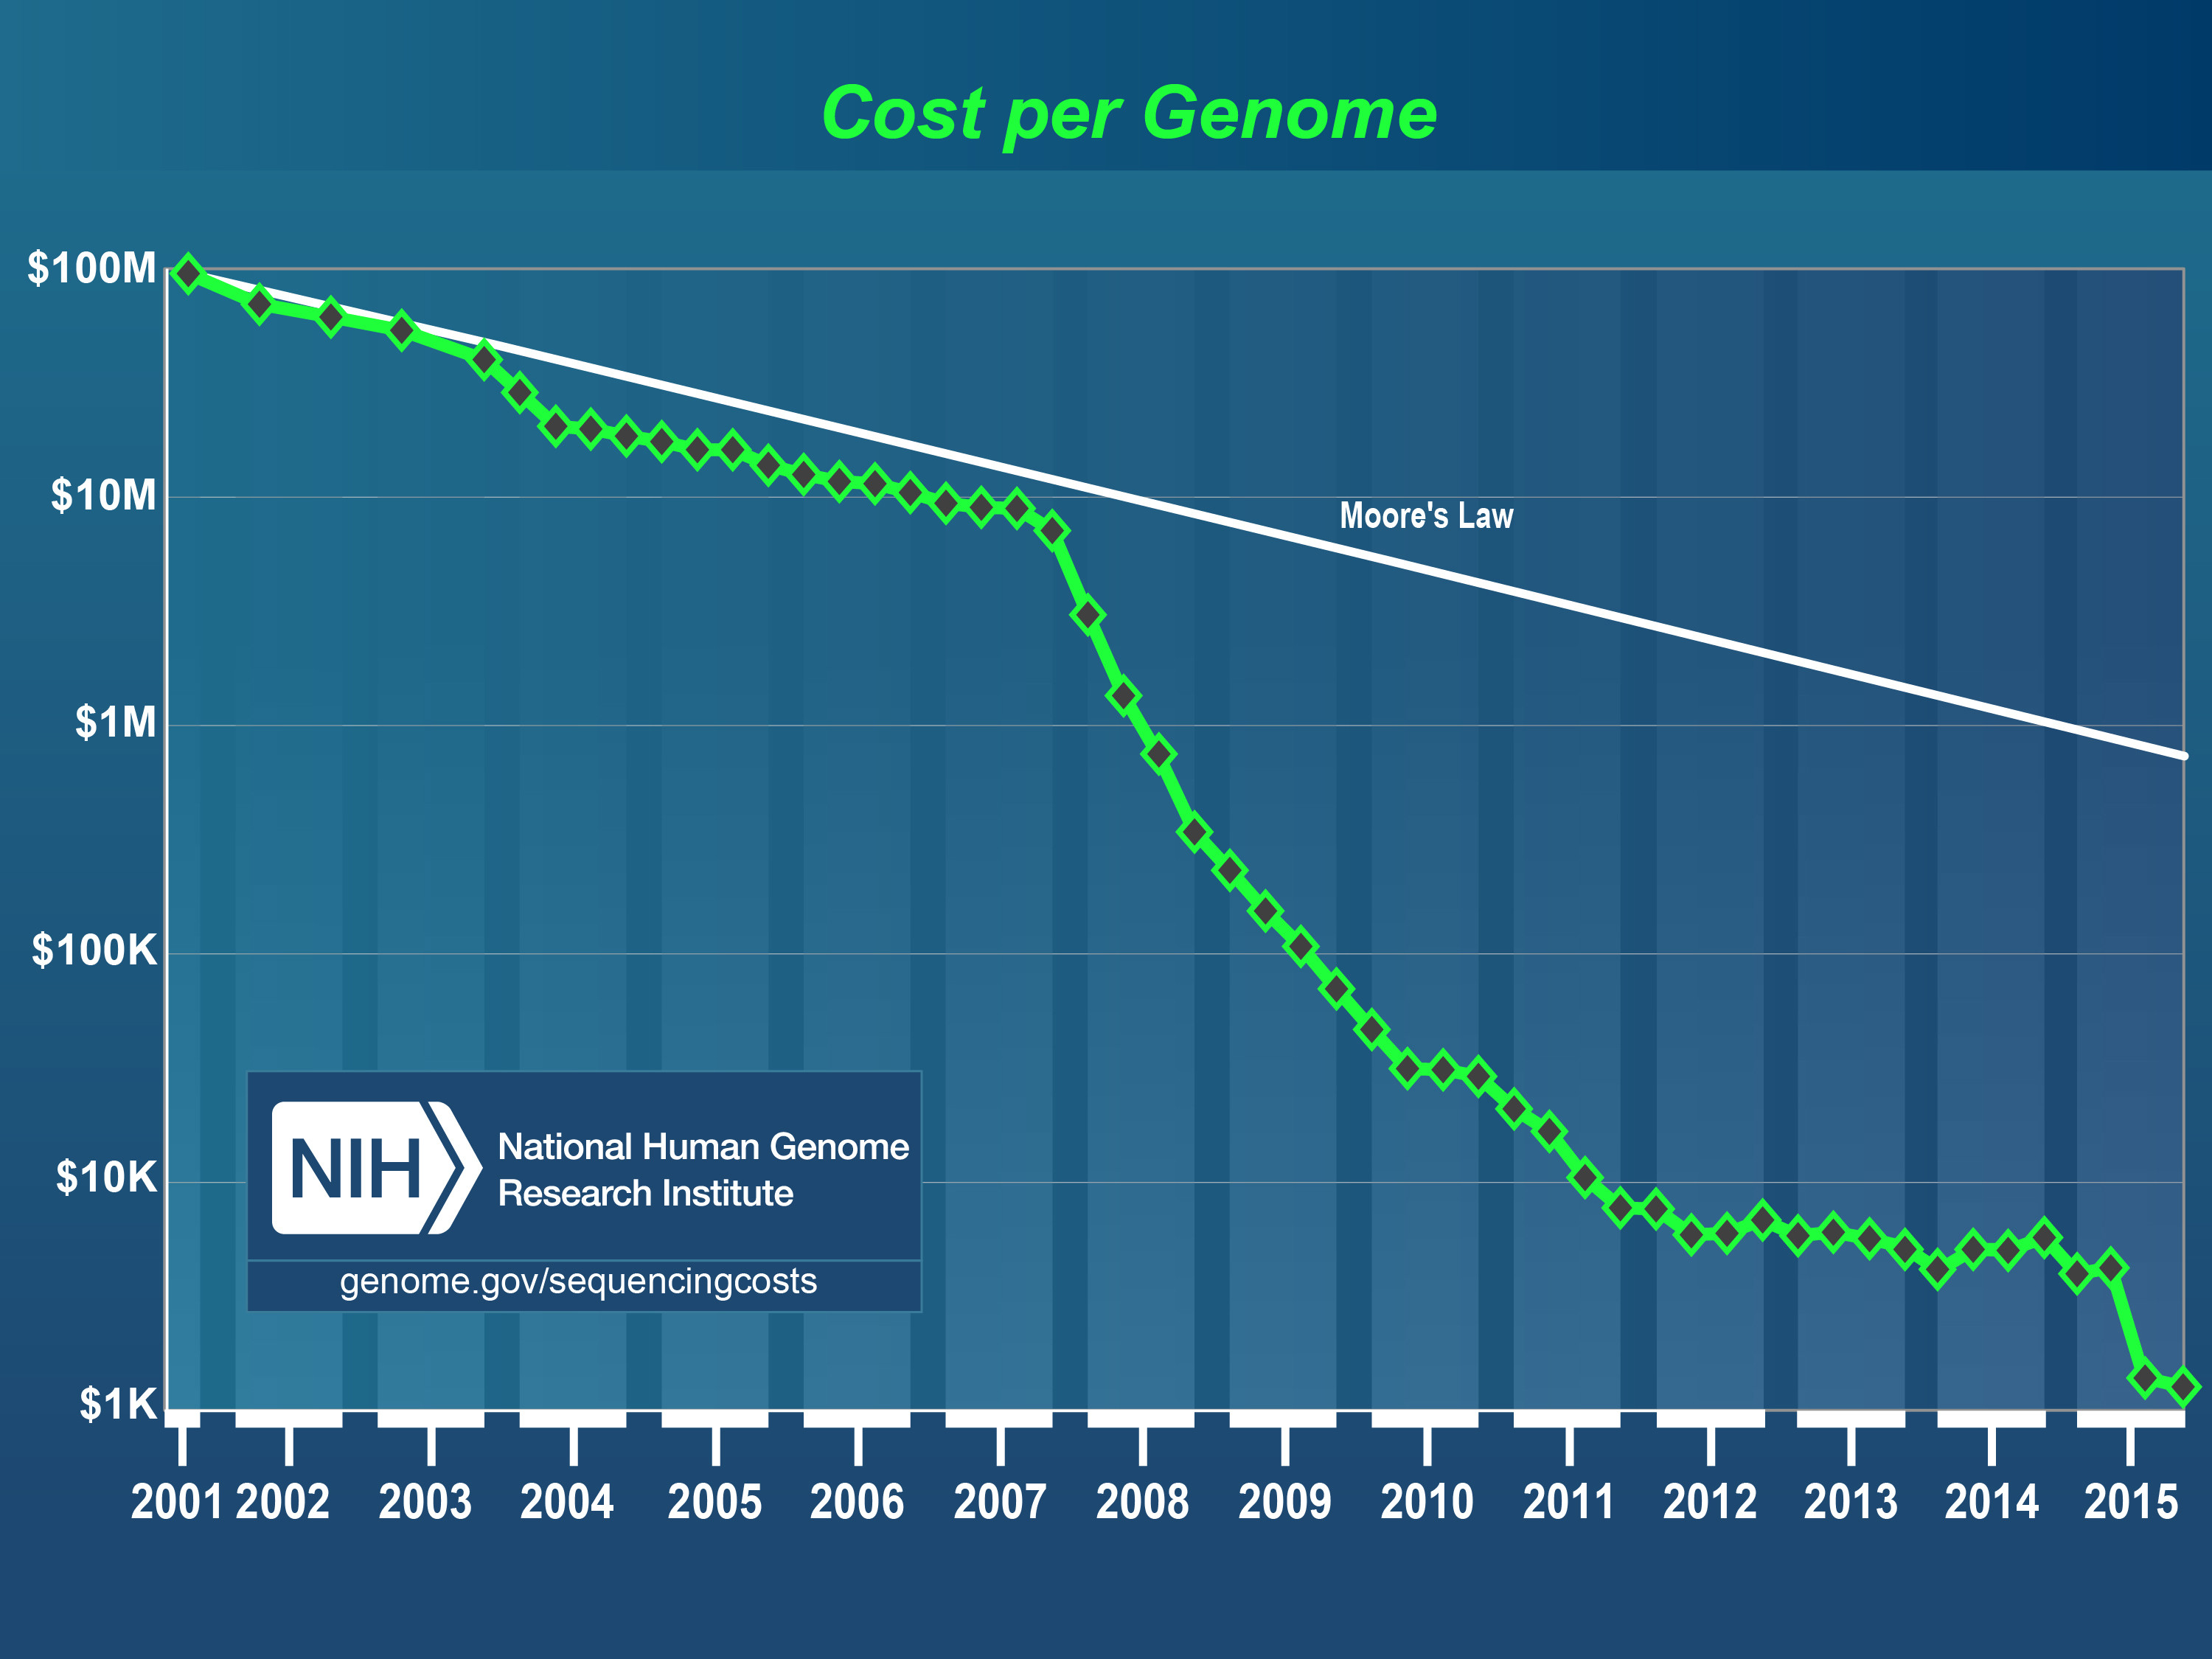 The declining cost of the genome sequencing